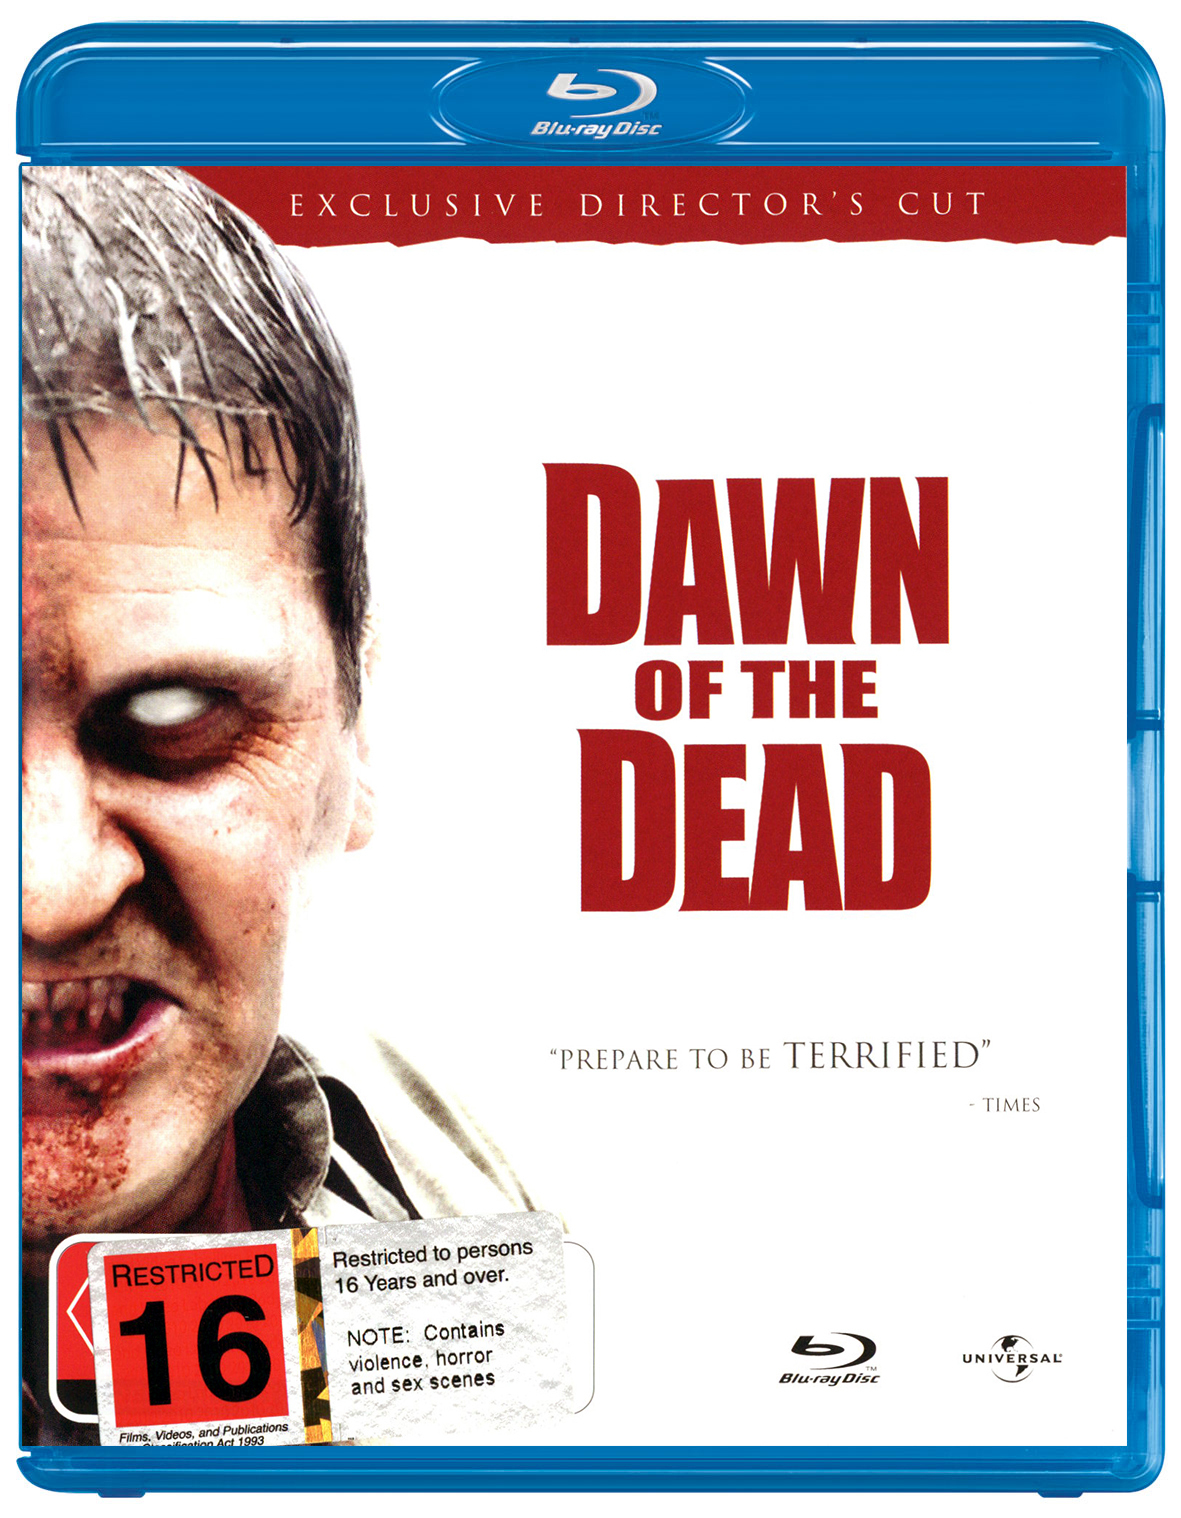 Dawn of the Dead on Blu-ray image